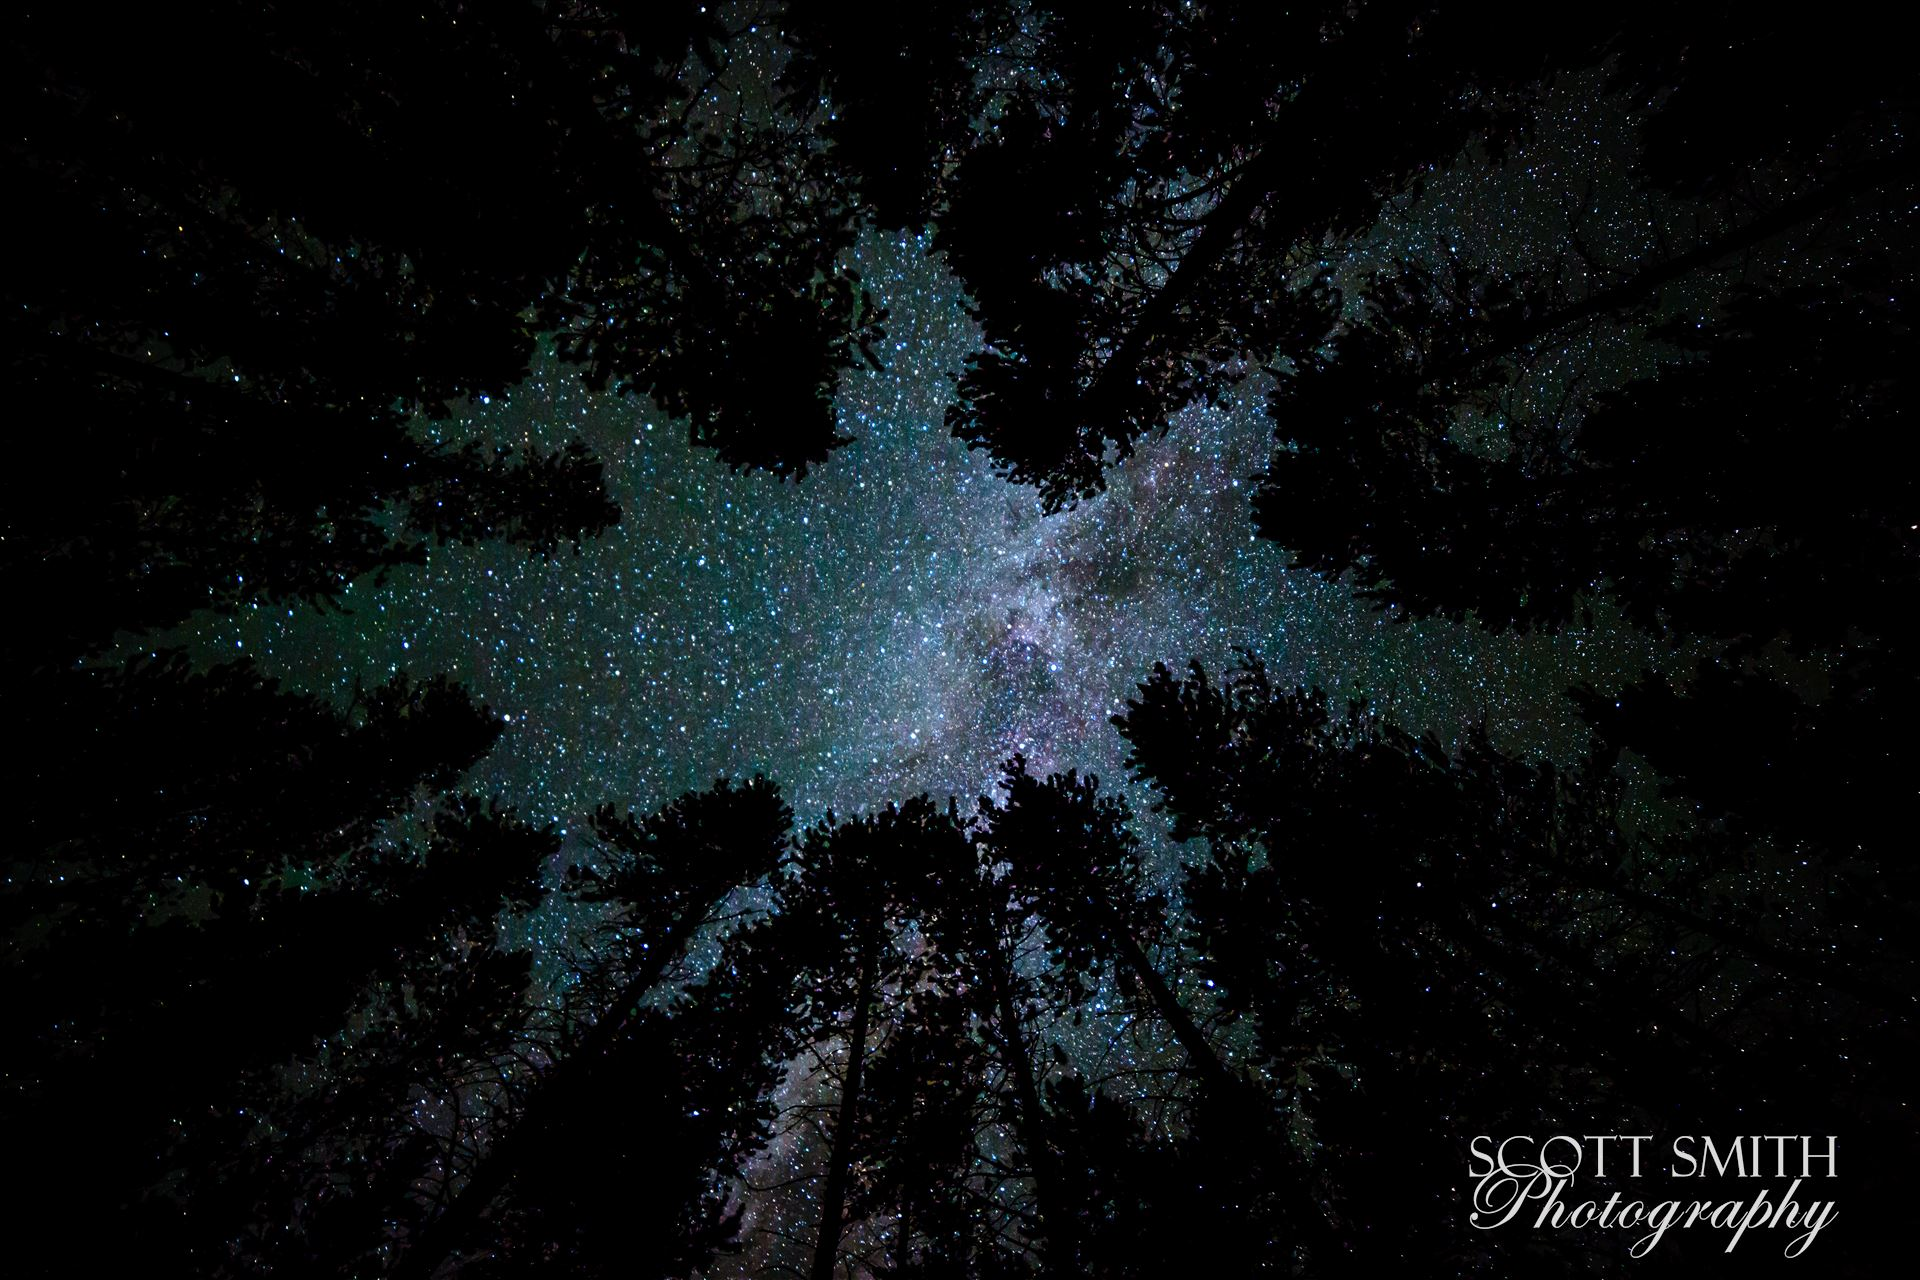 Camping with a View - Landscape - A beautiful view of the milky way from our campsite at Turquoise Lake, Leadville Colorado, adjusted for portrait view. by D Scott Smith